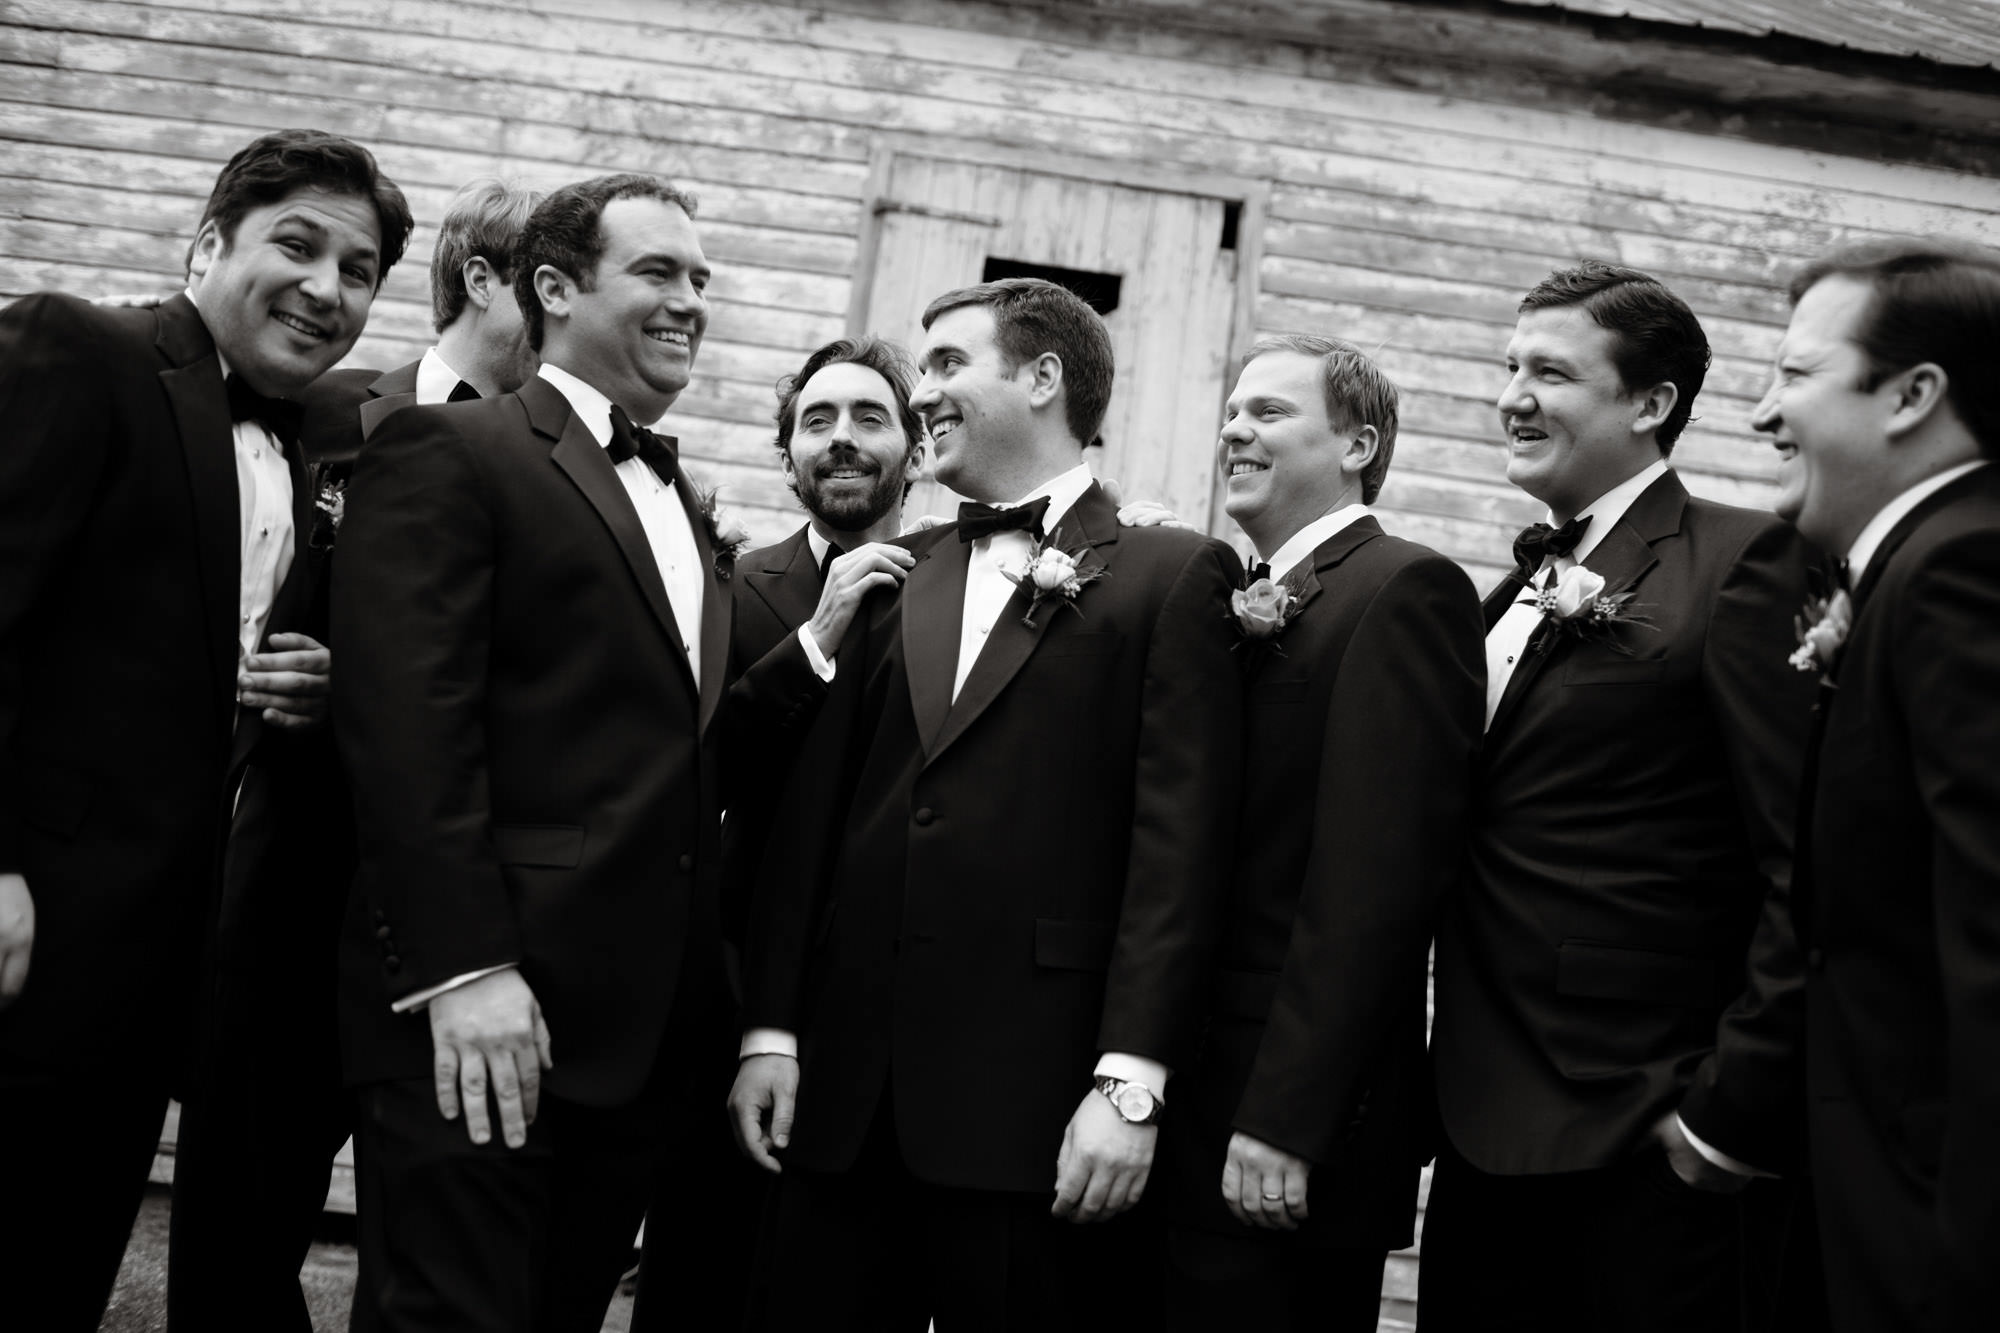 The groomsmen pose for a portrait on the Oaks Waterfront Inn and Events Wedding day.